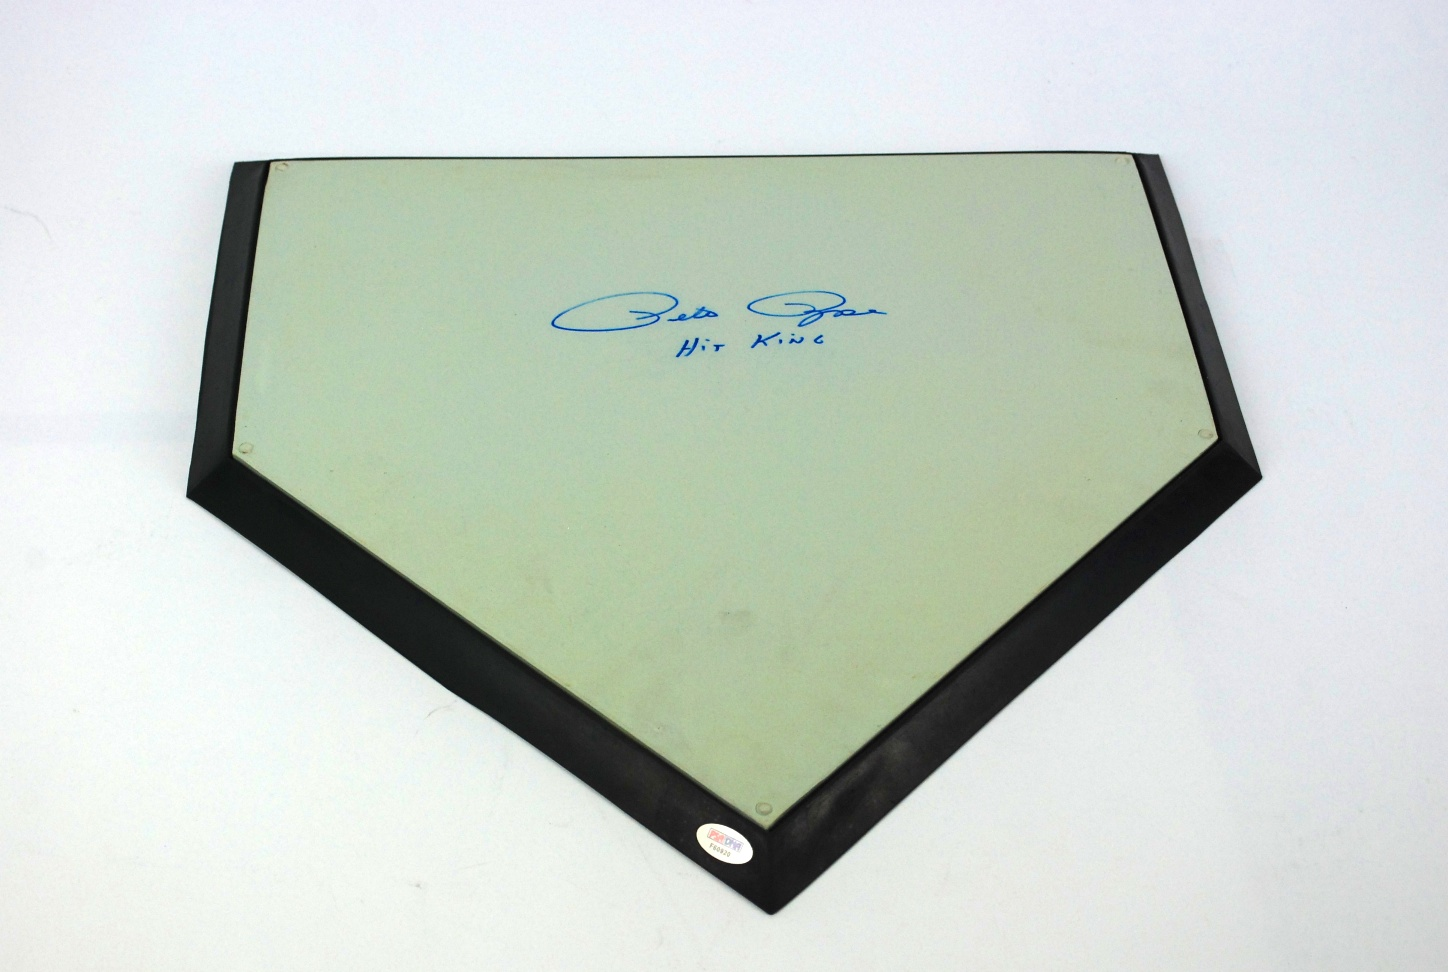 Astonishing Lot Detail Pete Rose Autographed Home Plate Download Free Architecture Designs Rallybritishbridgeorg